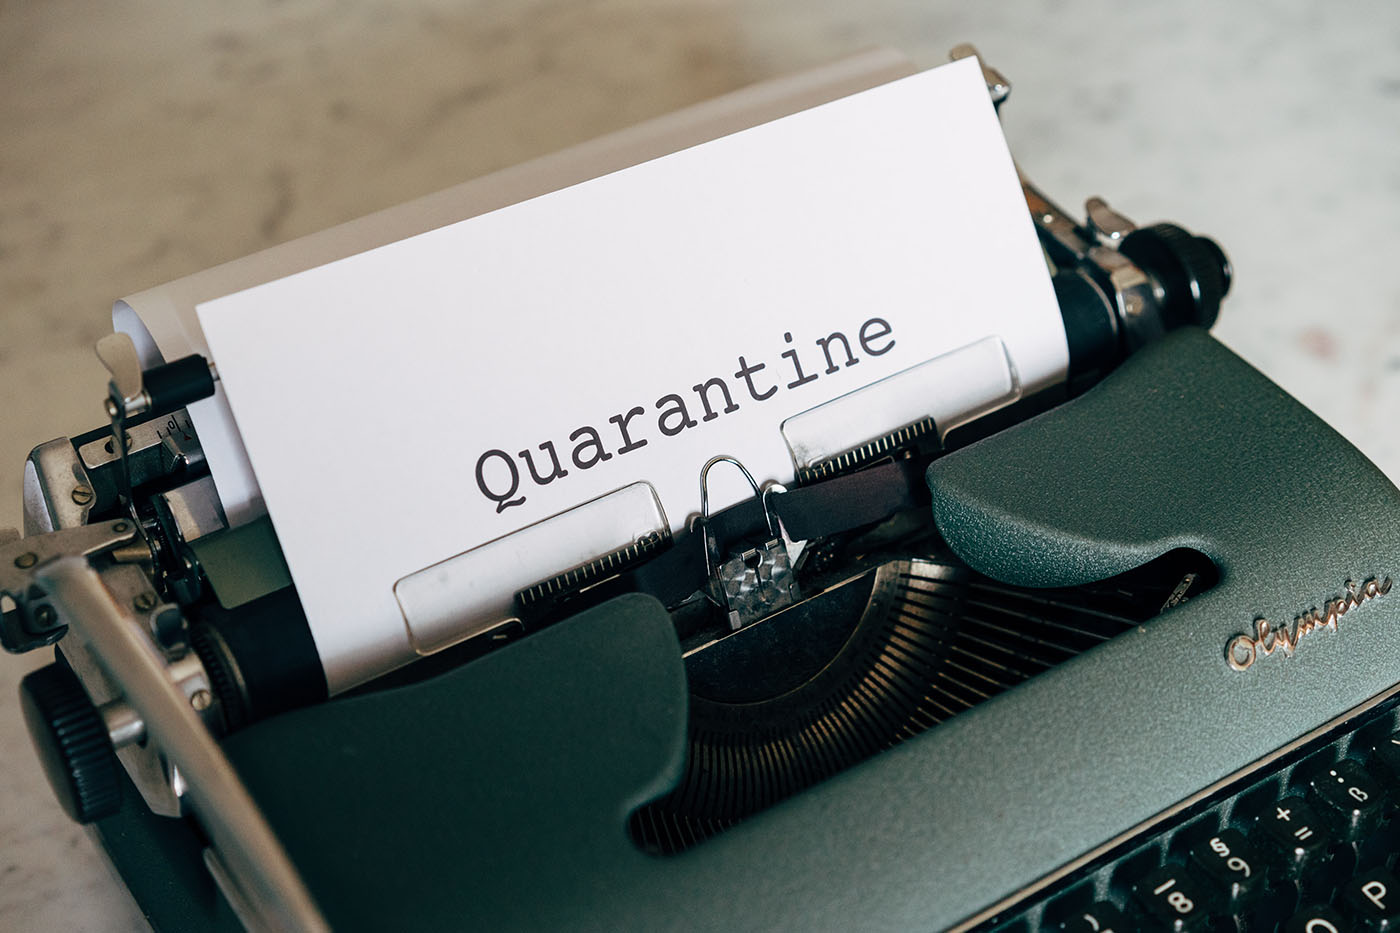 quarantine printed on a piece of paper